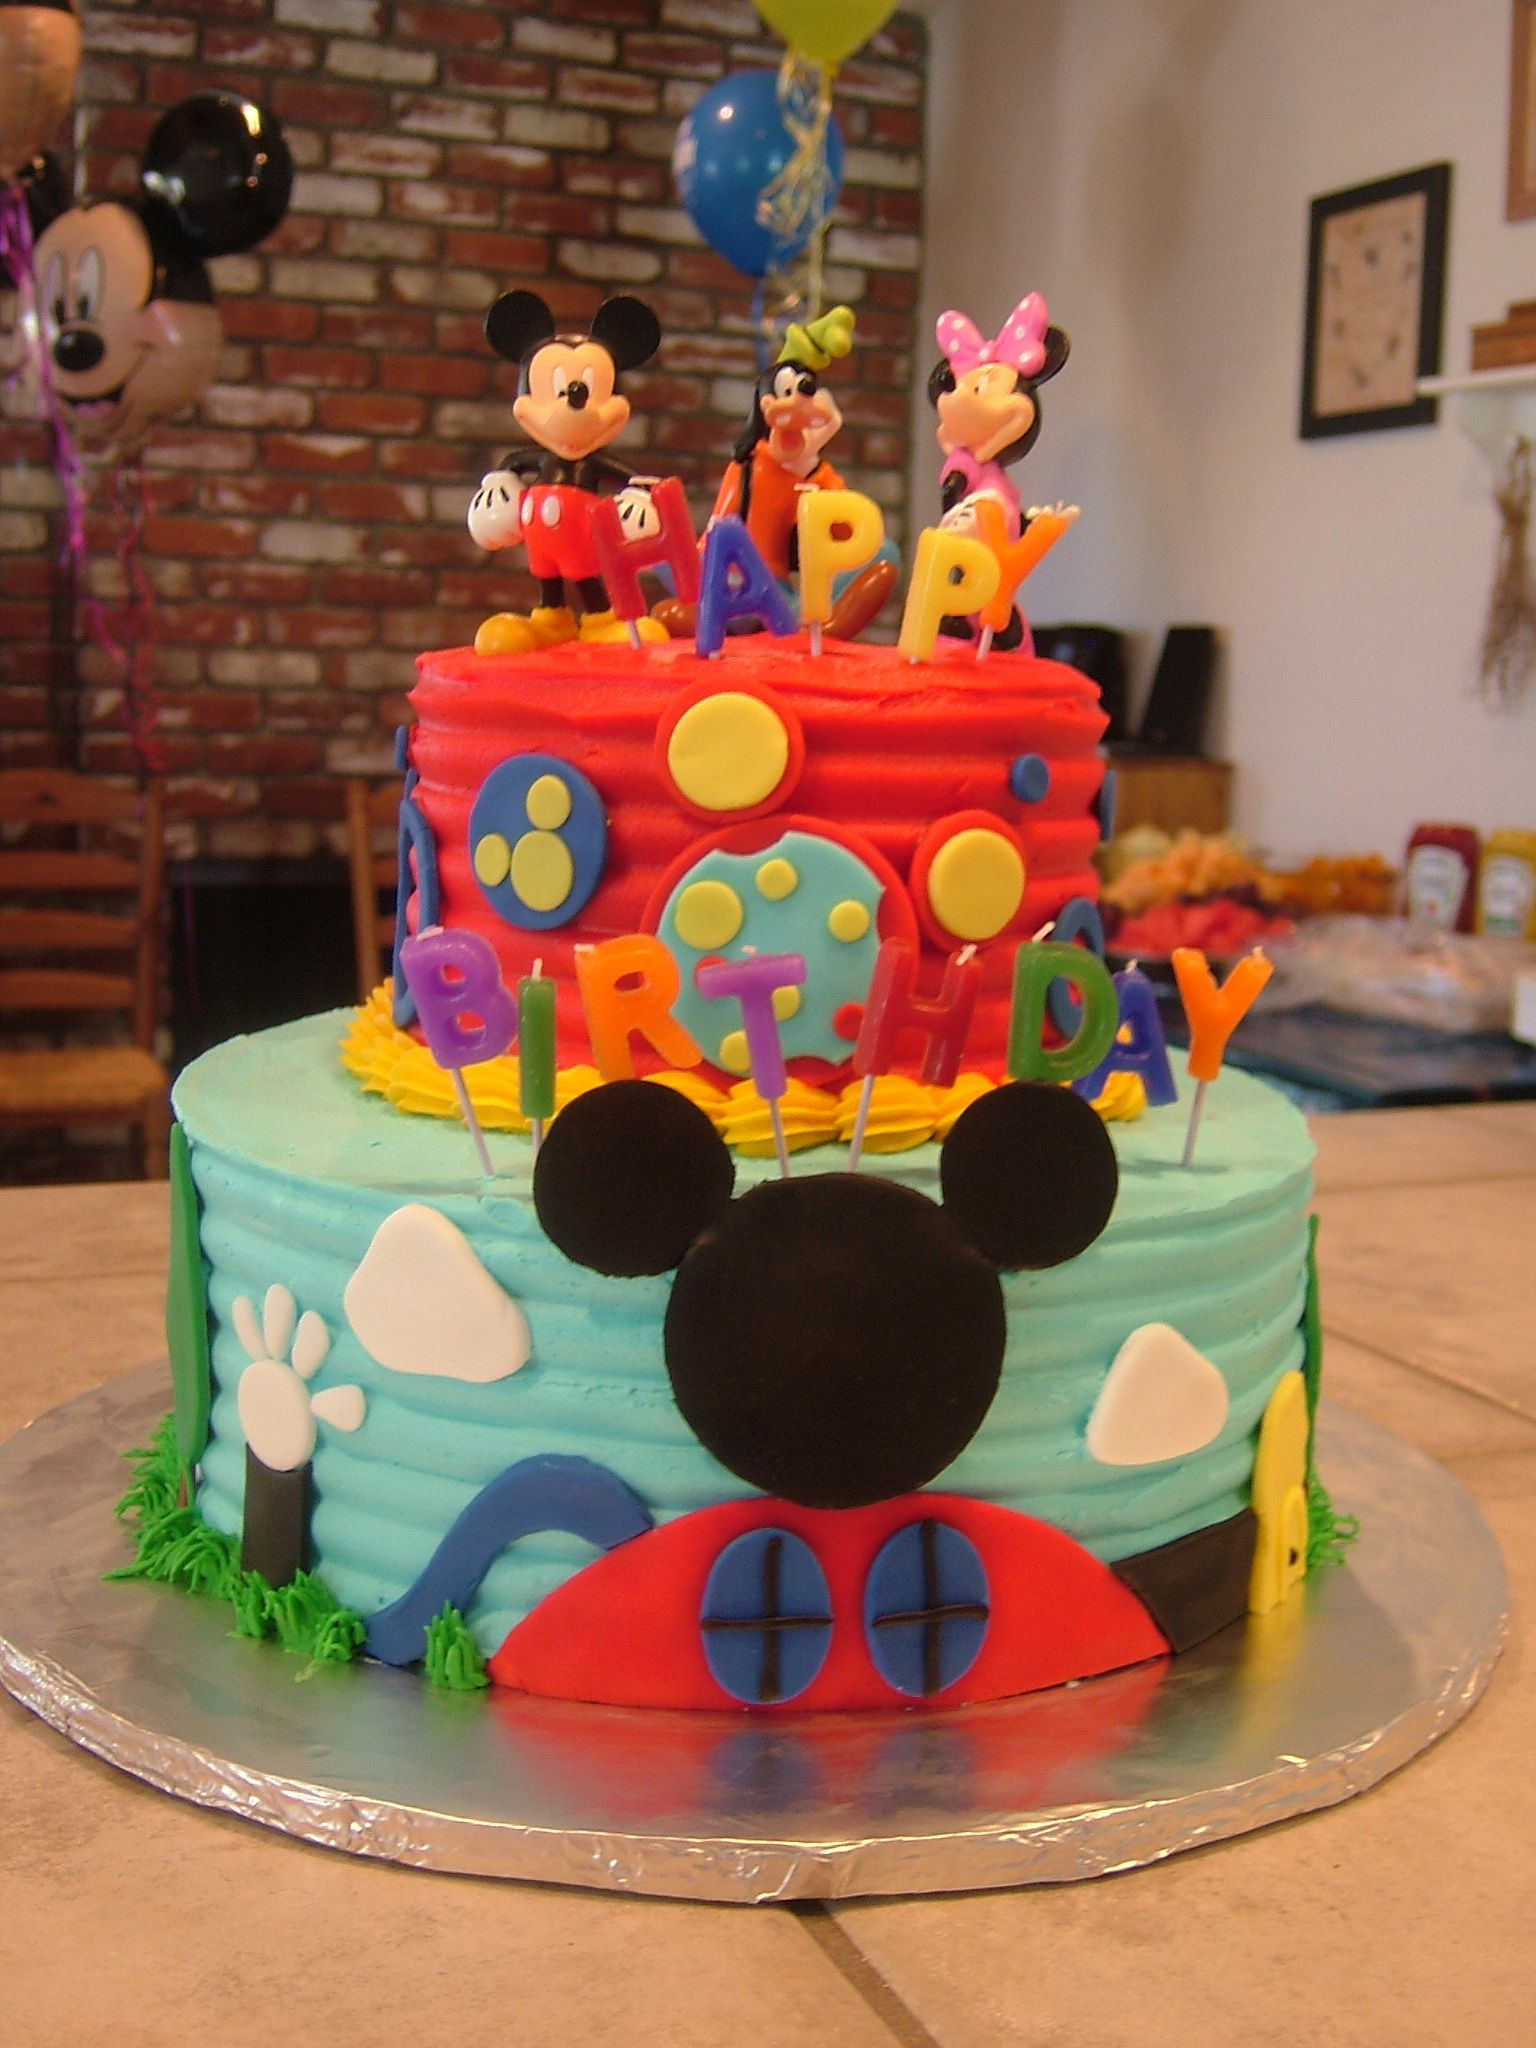 Admirable Homemade Batman Cake Ideas That Look Great Con Imagenes Pastel Funny Birthday Cards Online Overcheapnameinfo